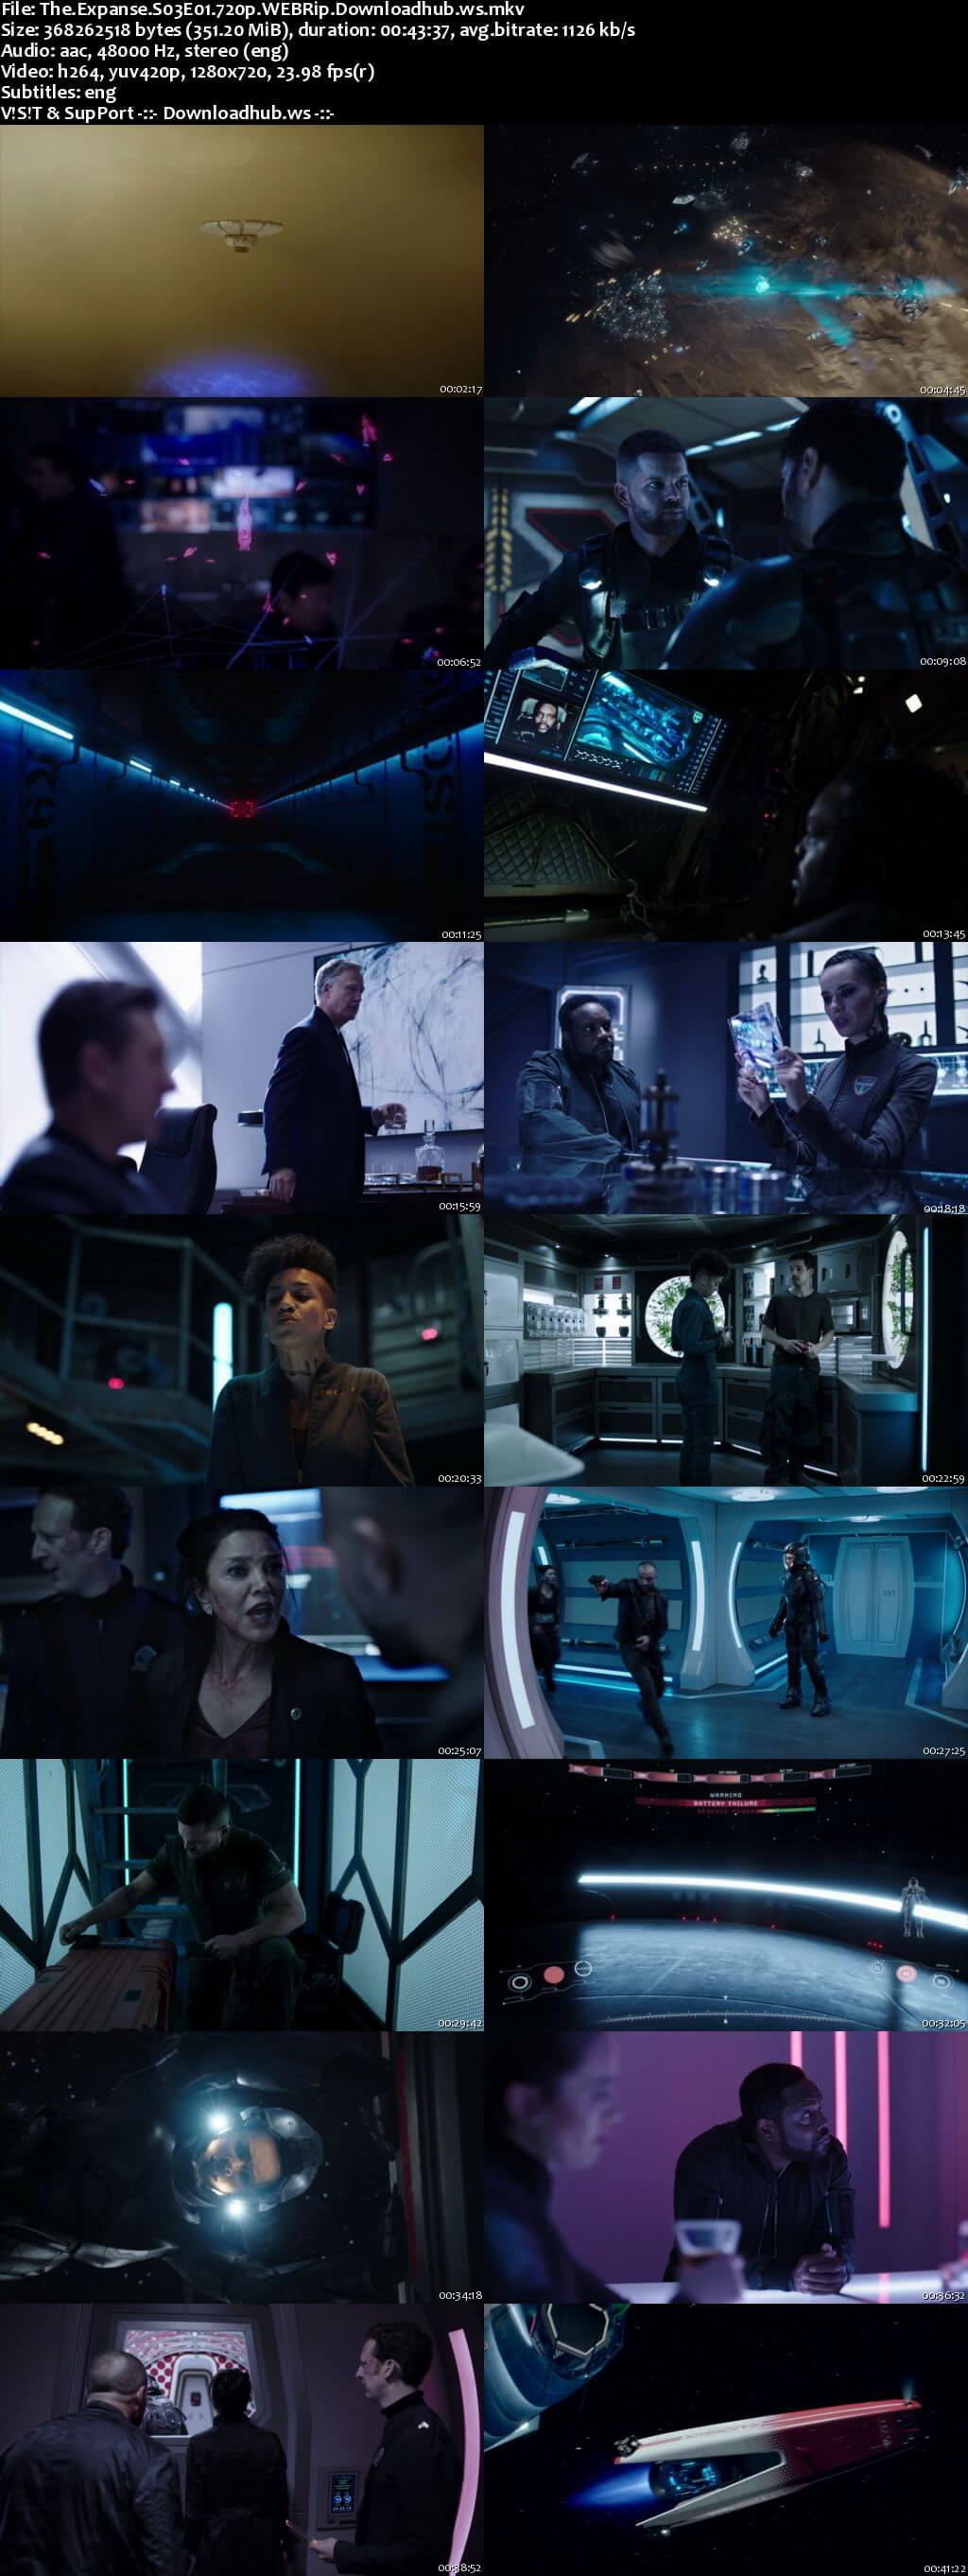 The Expanse S03E01 350MB WEBRip 720p x264 ESubs